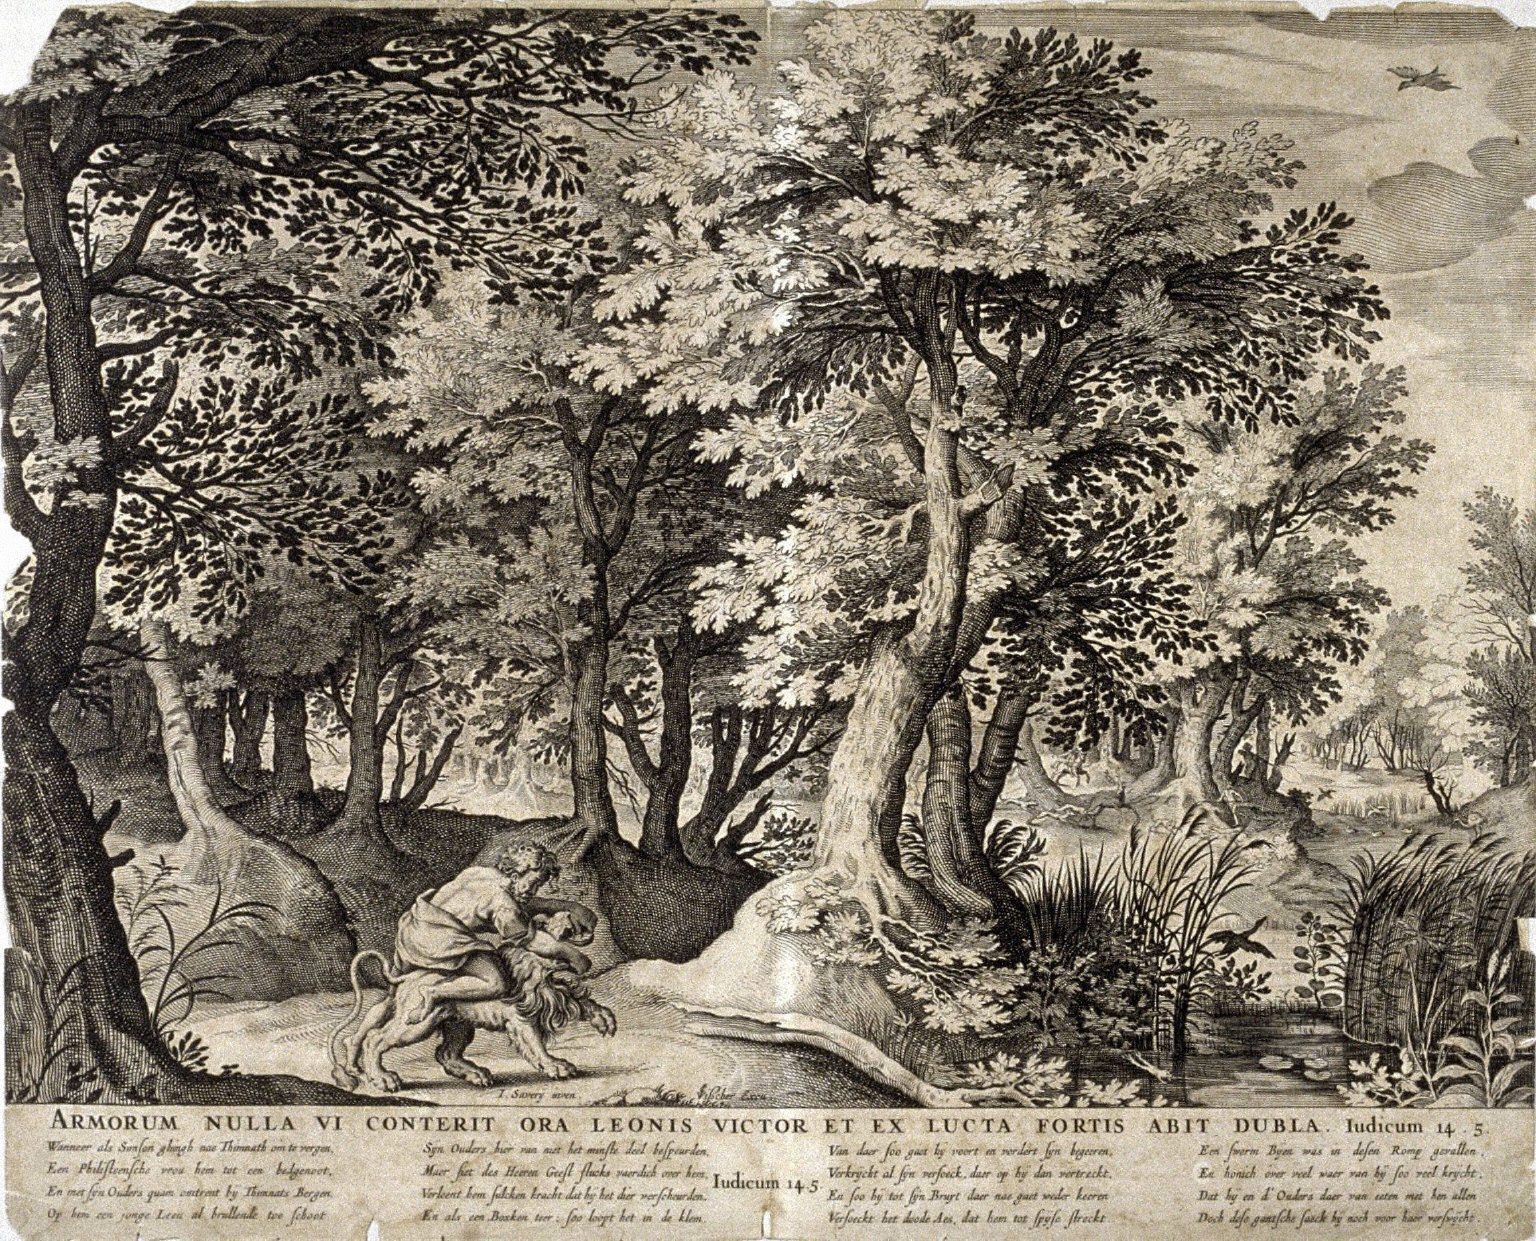 Armorum Nulla VI Conterit Ora Leonis Victor et Ex Lucta Fortis Abit Dubla (Samson Wrestling with the Lion), Judges 14:5, from a group of Biblical illustrations printed by C.J. Visscher